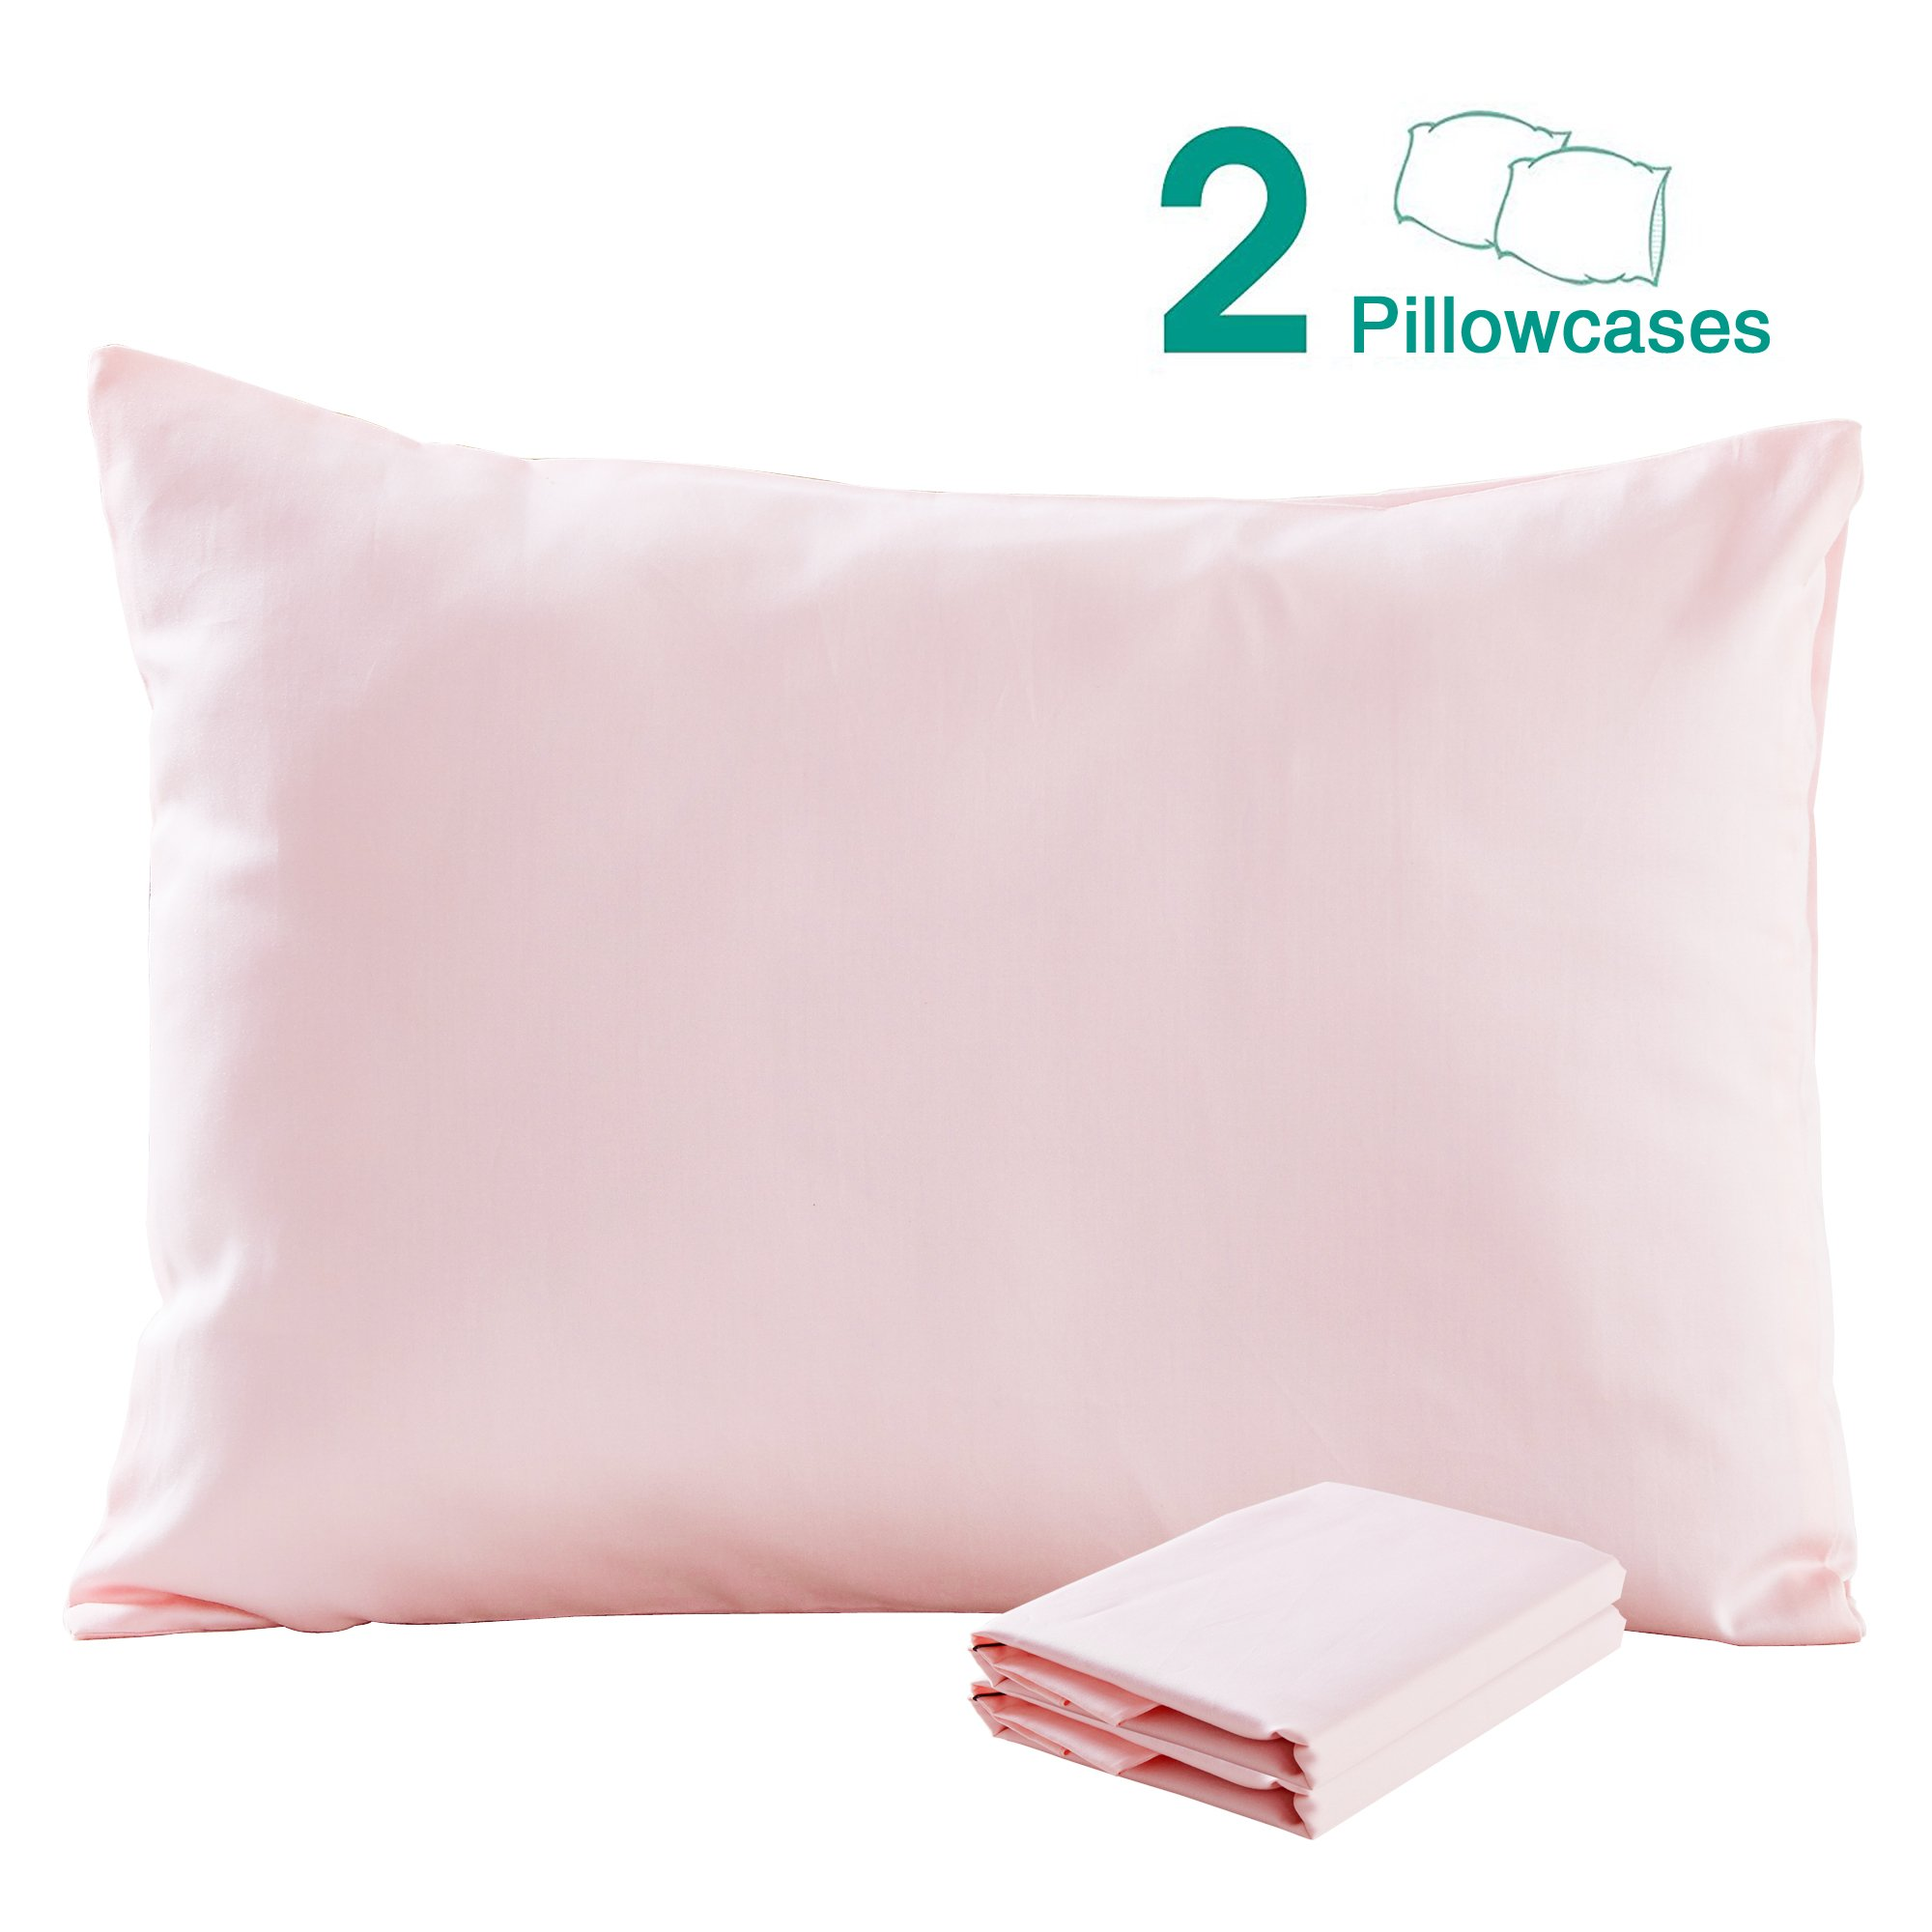 100% Cotton Sateen Toddler Pillowcases Set of 2, Soft and Cozy, 13''x 18'', Pink by NTBAY